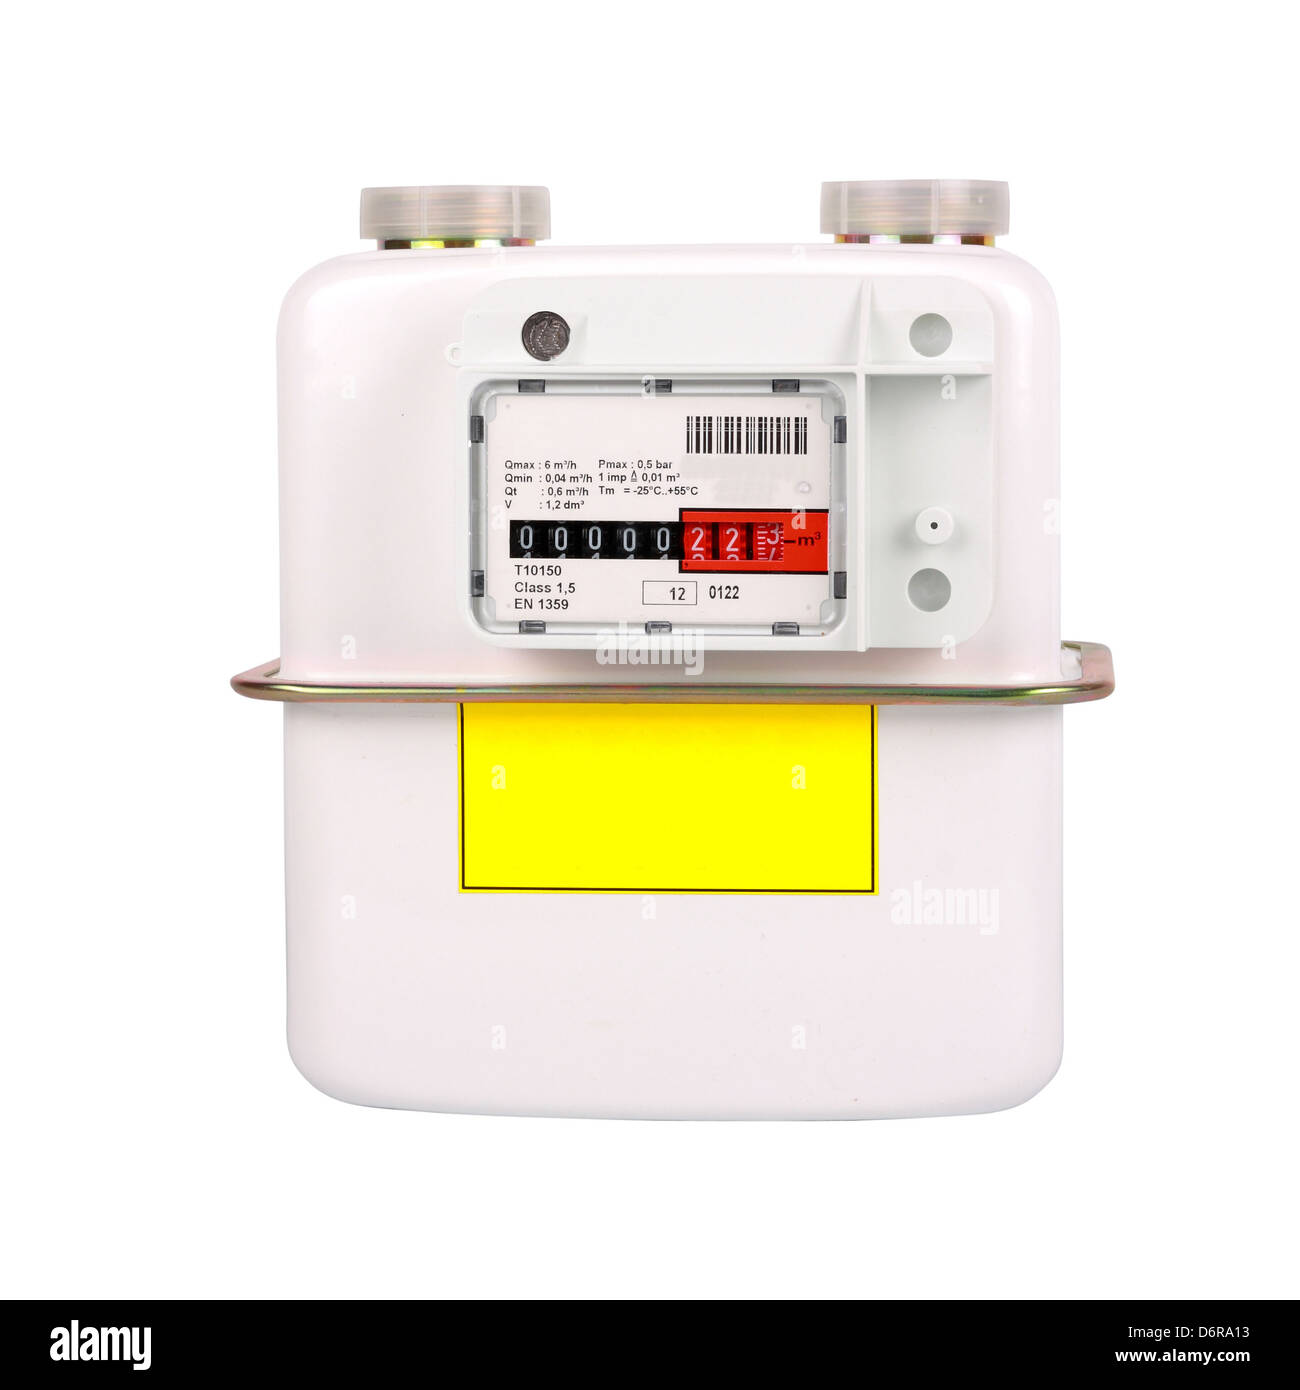 Natural Gas Meter. Isolated on white background. Including clipping path. All copyrighted elements removed. Stock Photo